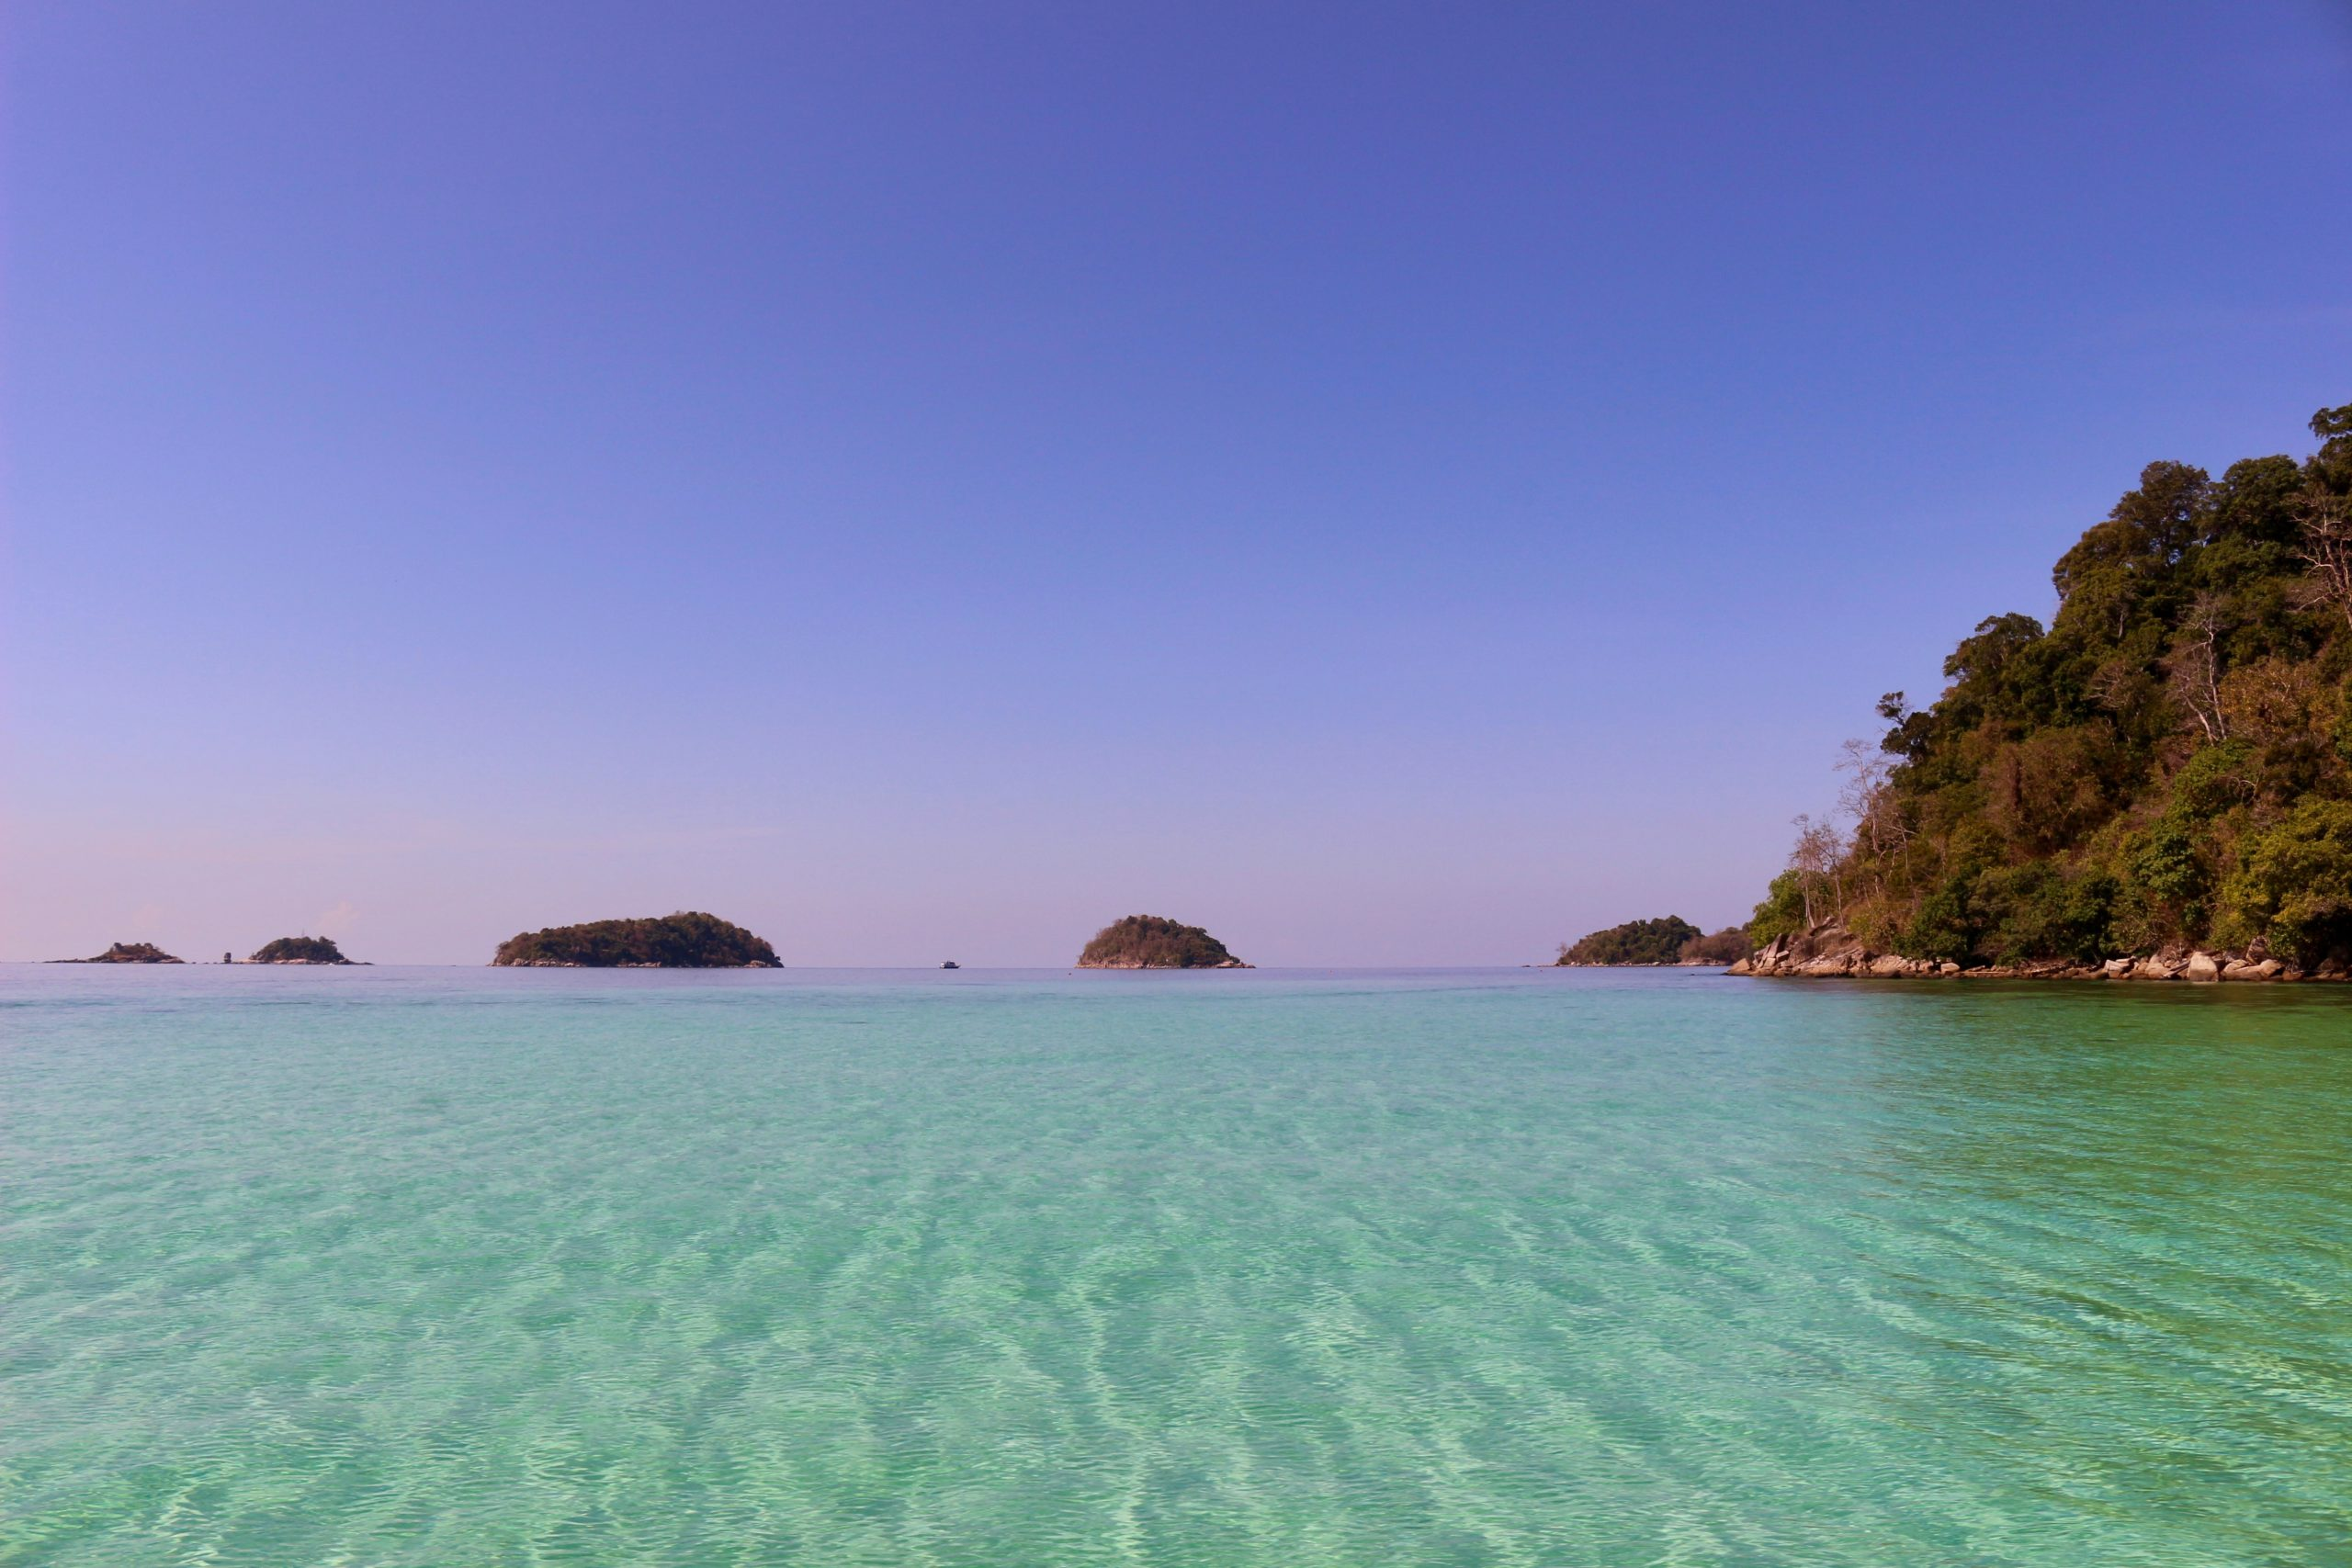 Turquoise waters and a blue sky above a chain of islands in Thailand. ©KettiWilhelm2019